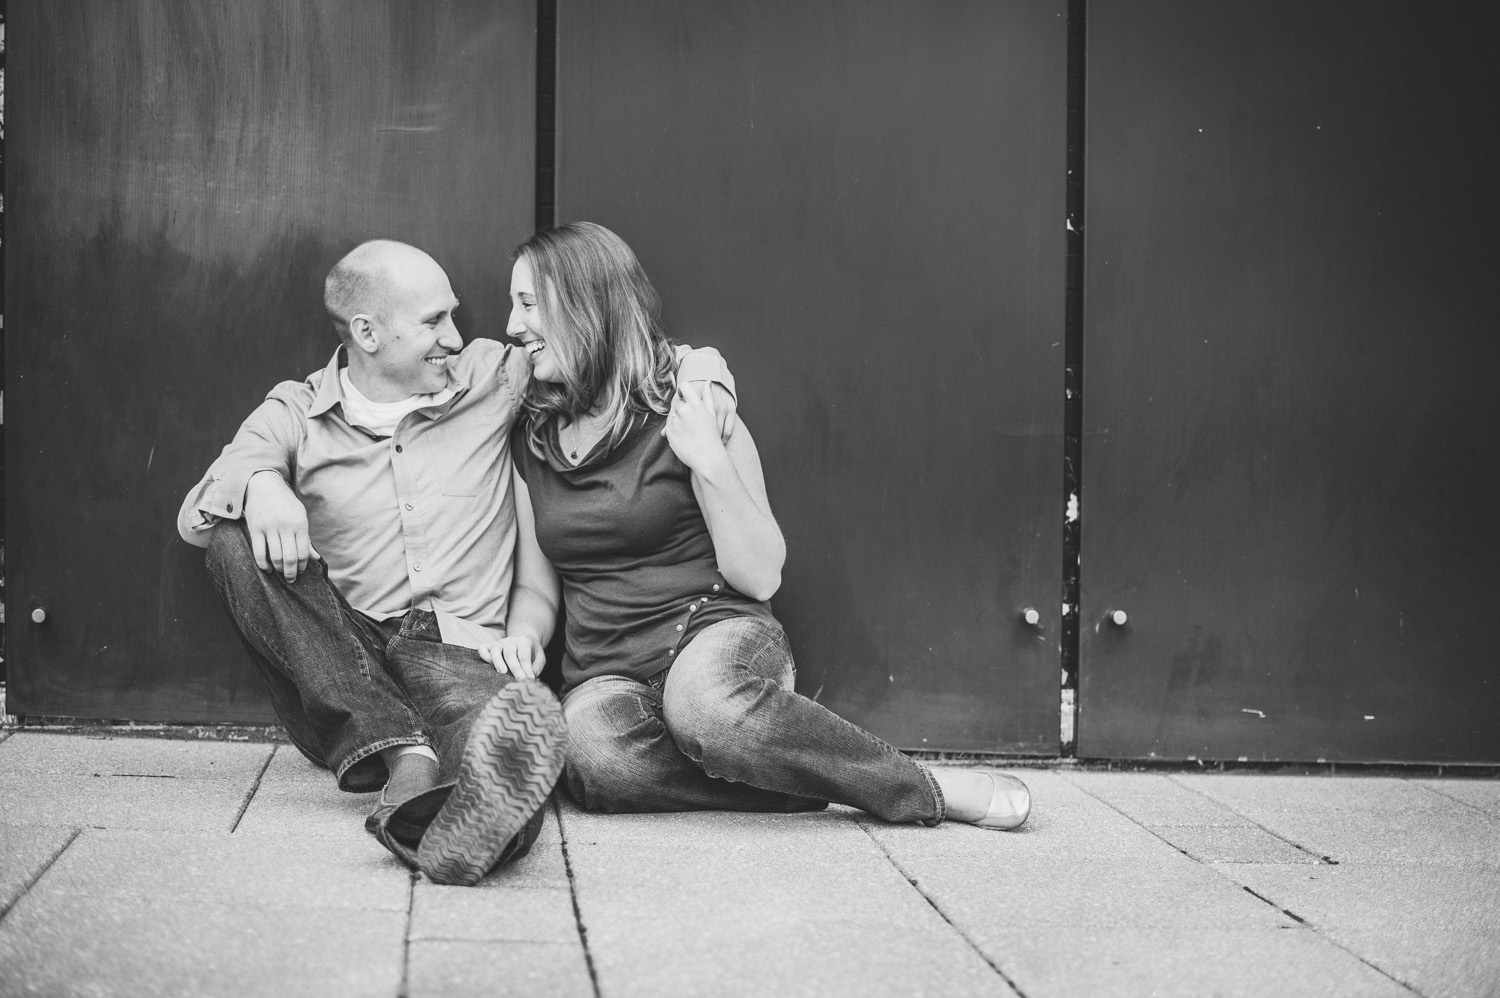 brandywine-park-city-of-wilmington-engagement-session-12.jpg